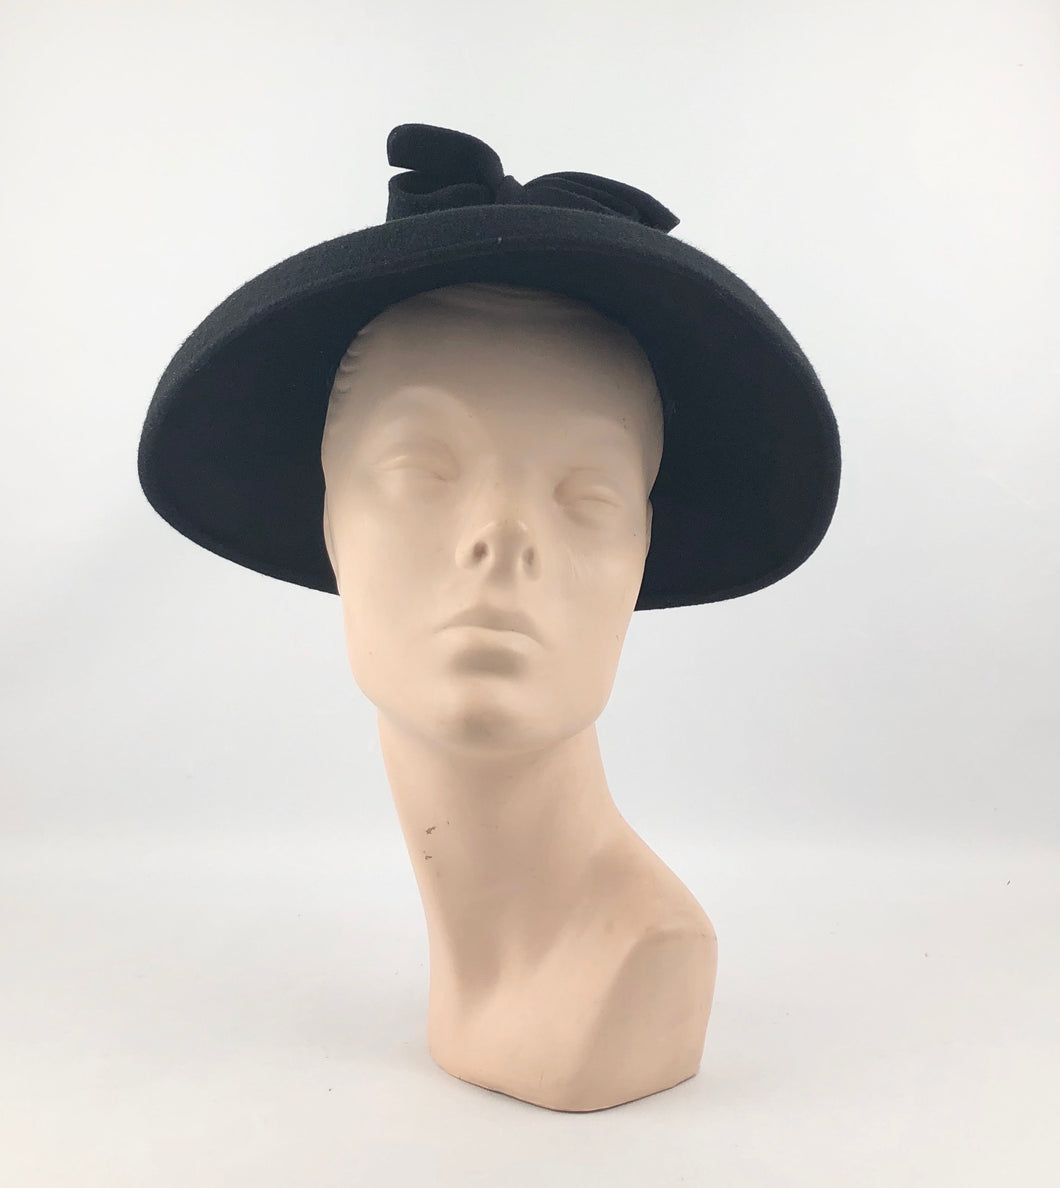 RESERVED 1940s Black Felt Bonnet Hat with Grosgrain Trim